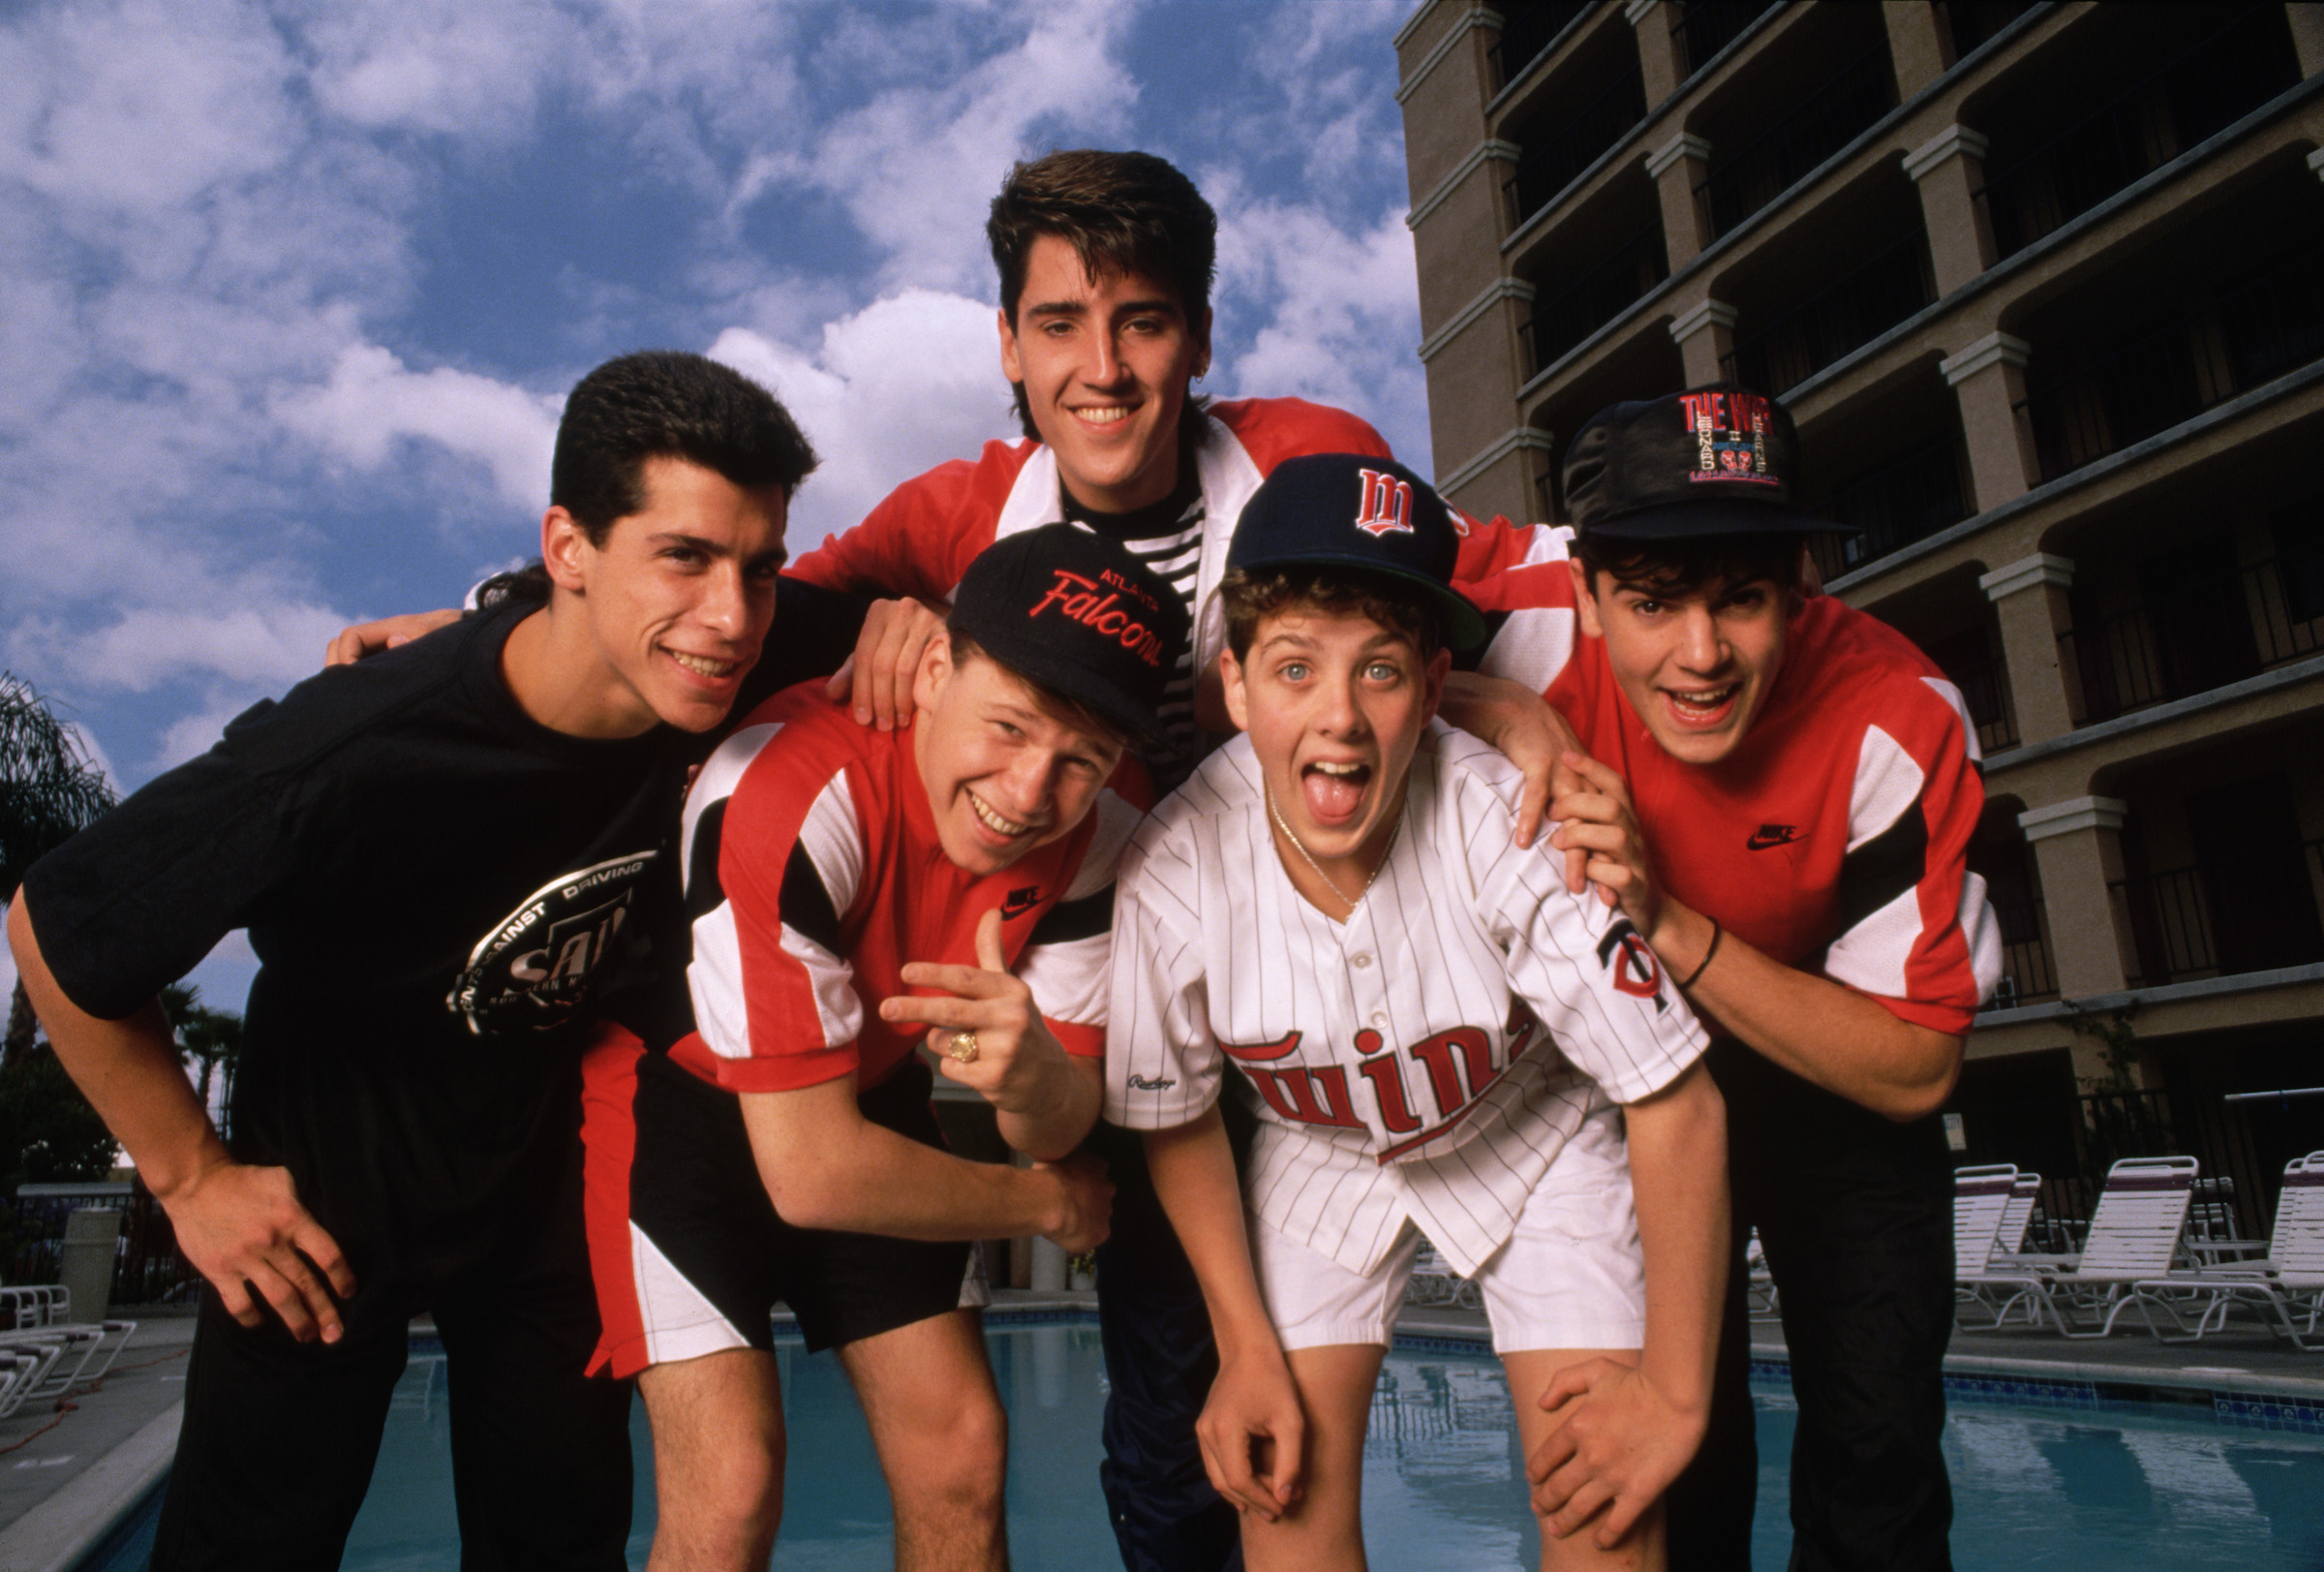 New Kids On The Block - Do You Remember?